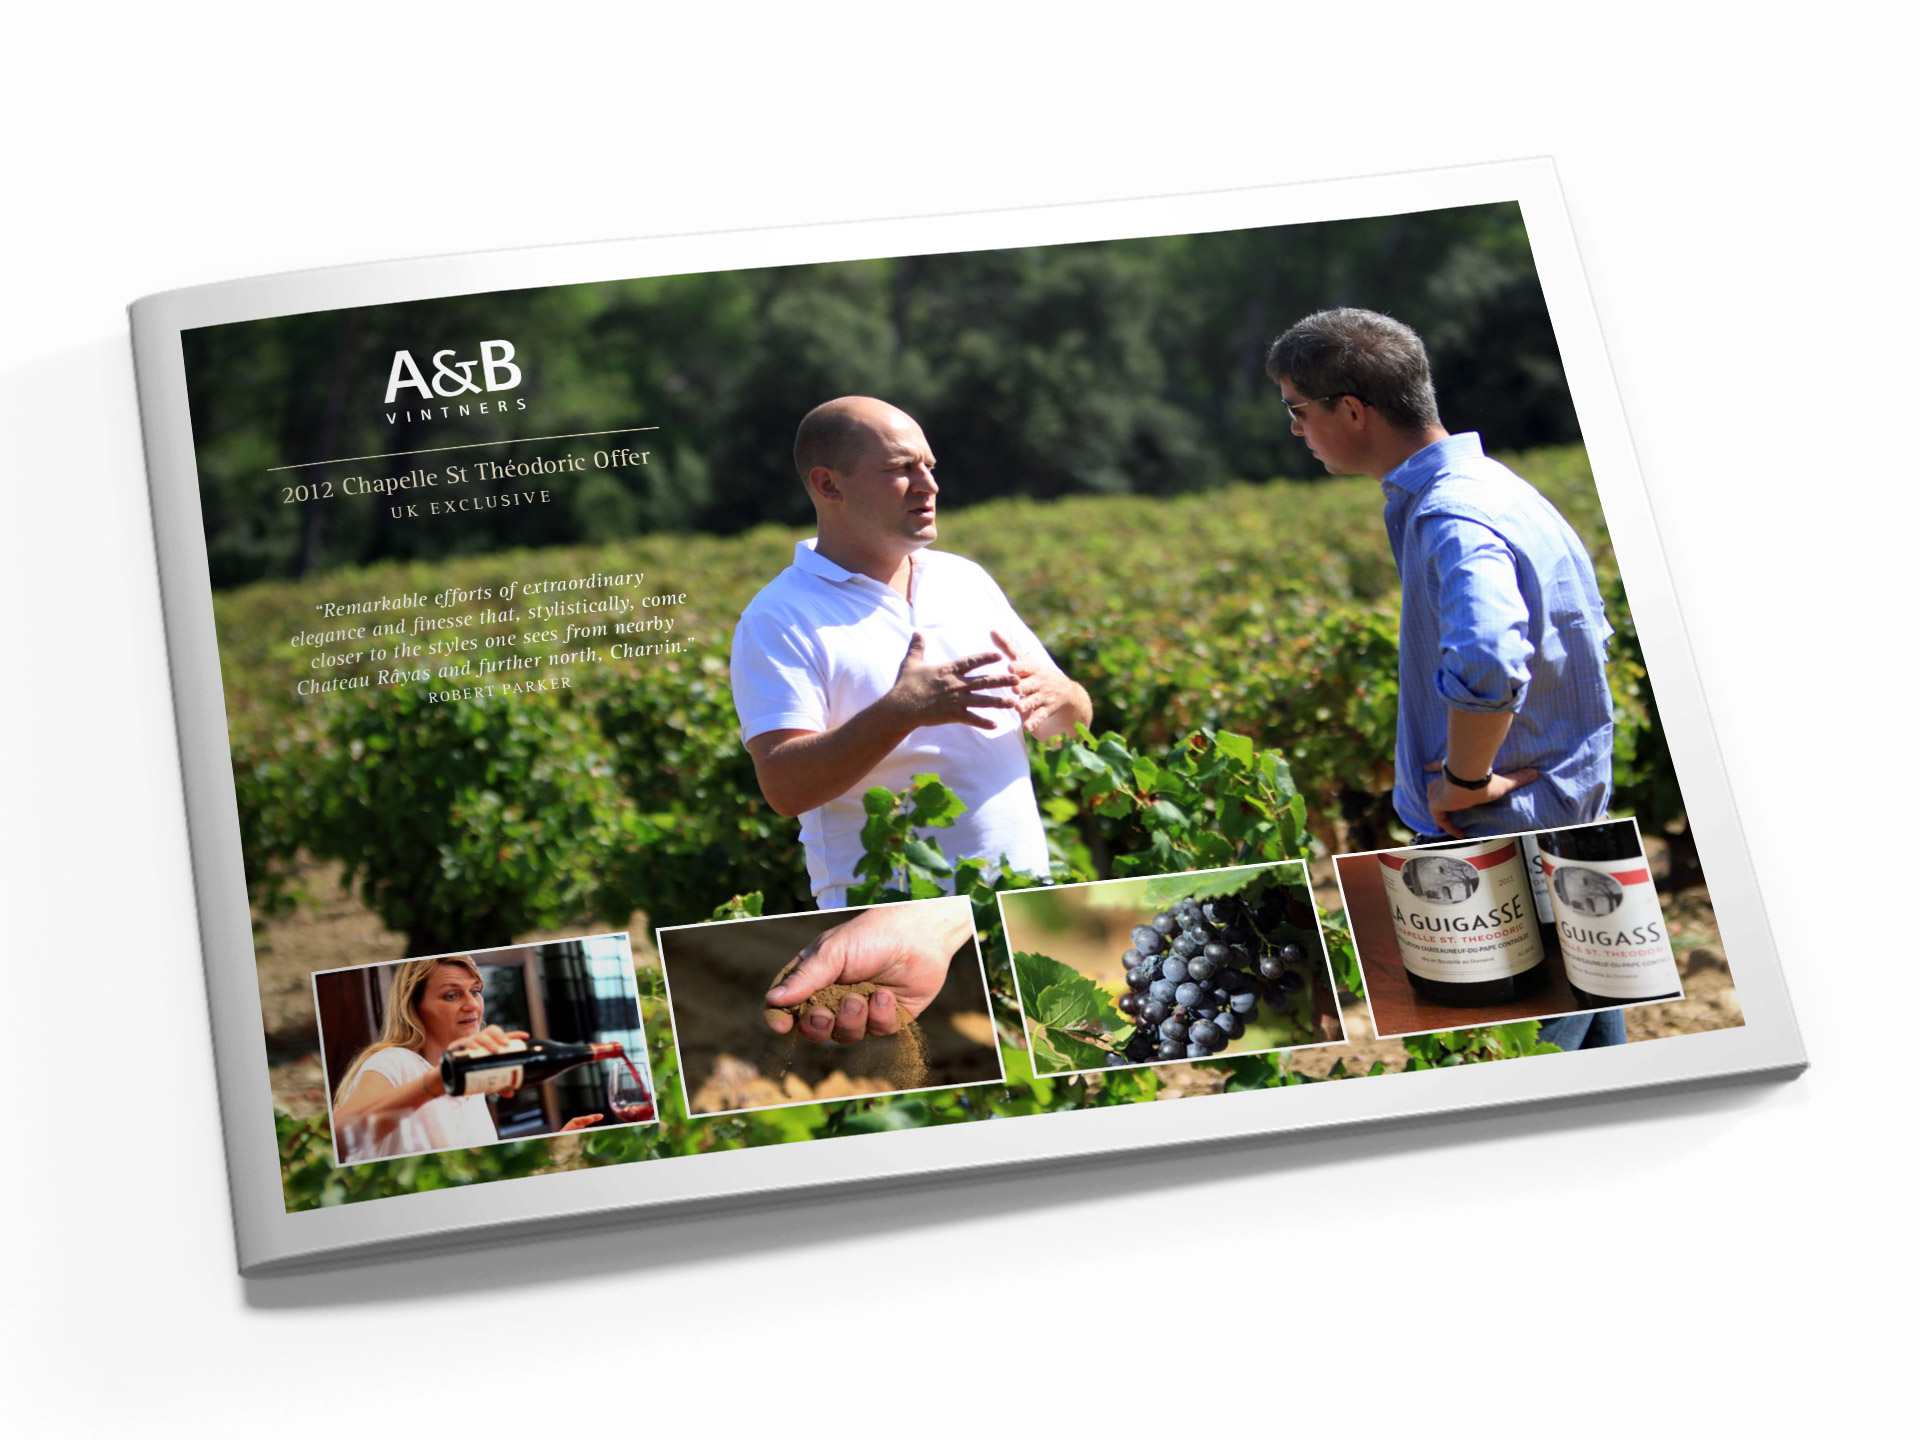 Brochure design for AB Vintners Chateau Neuf du Pape